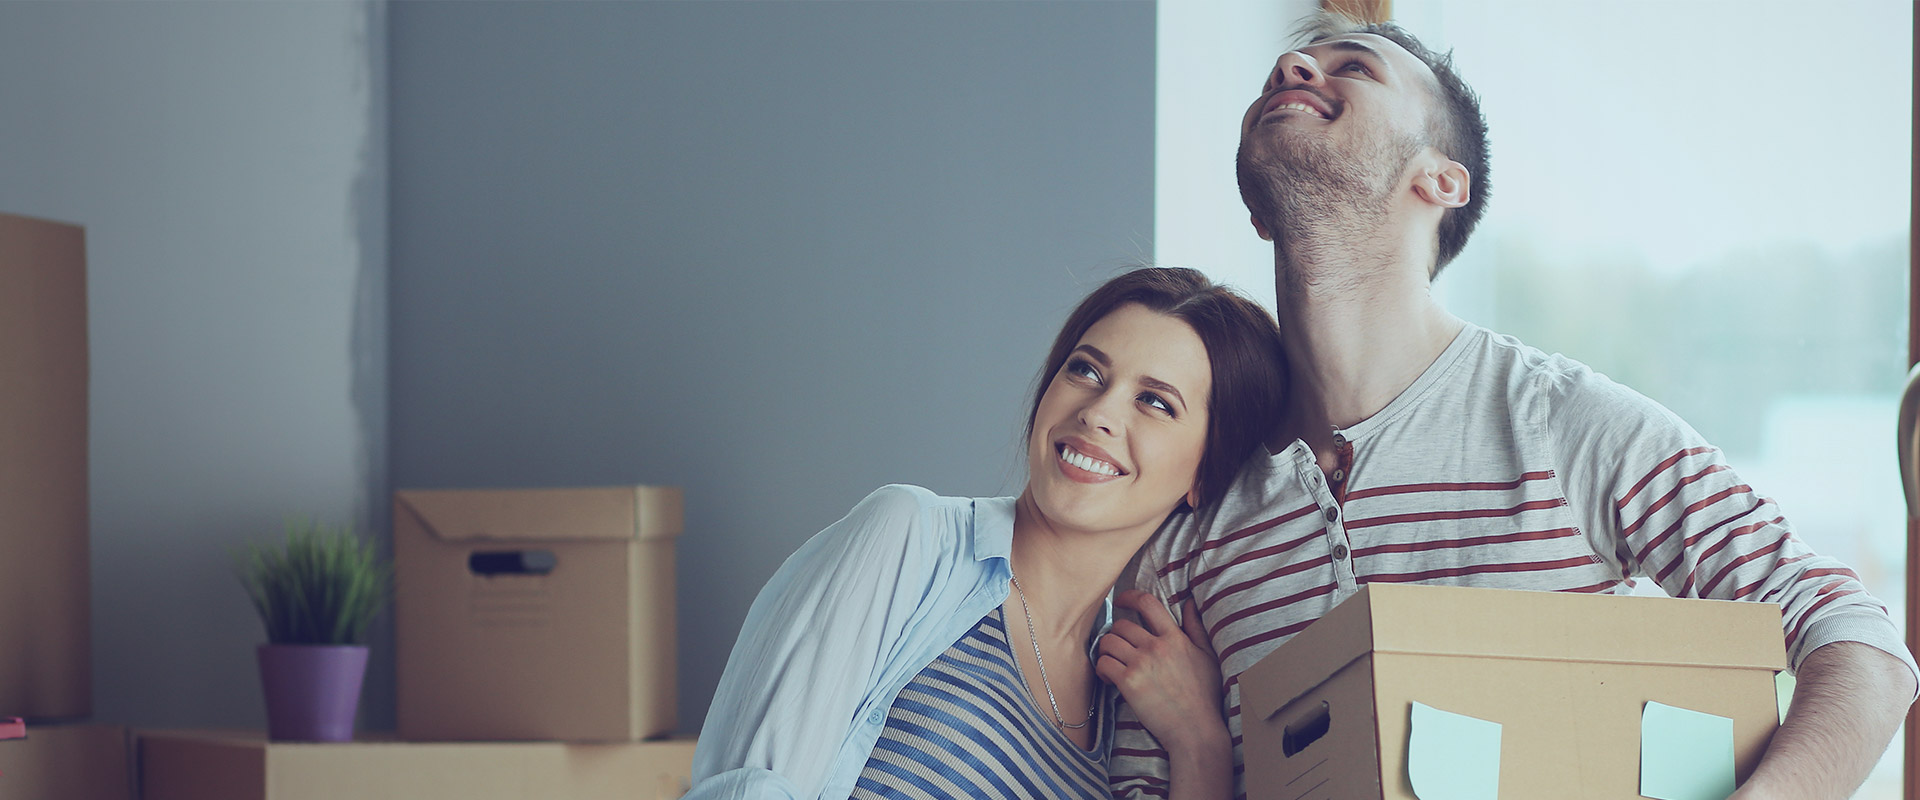 9 Apartment Moving Tips